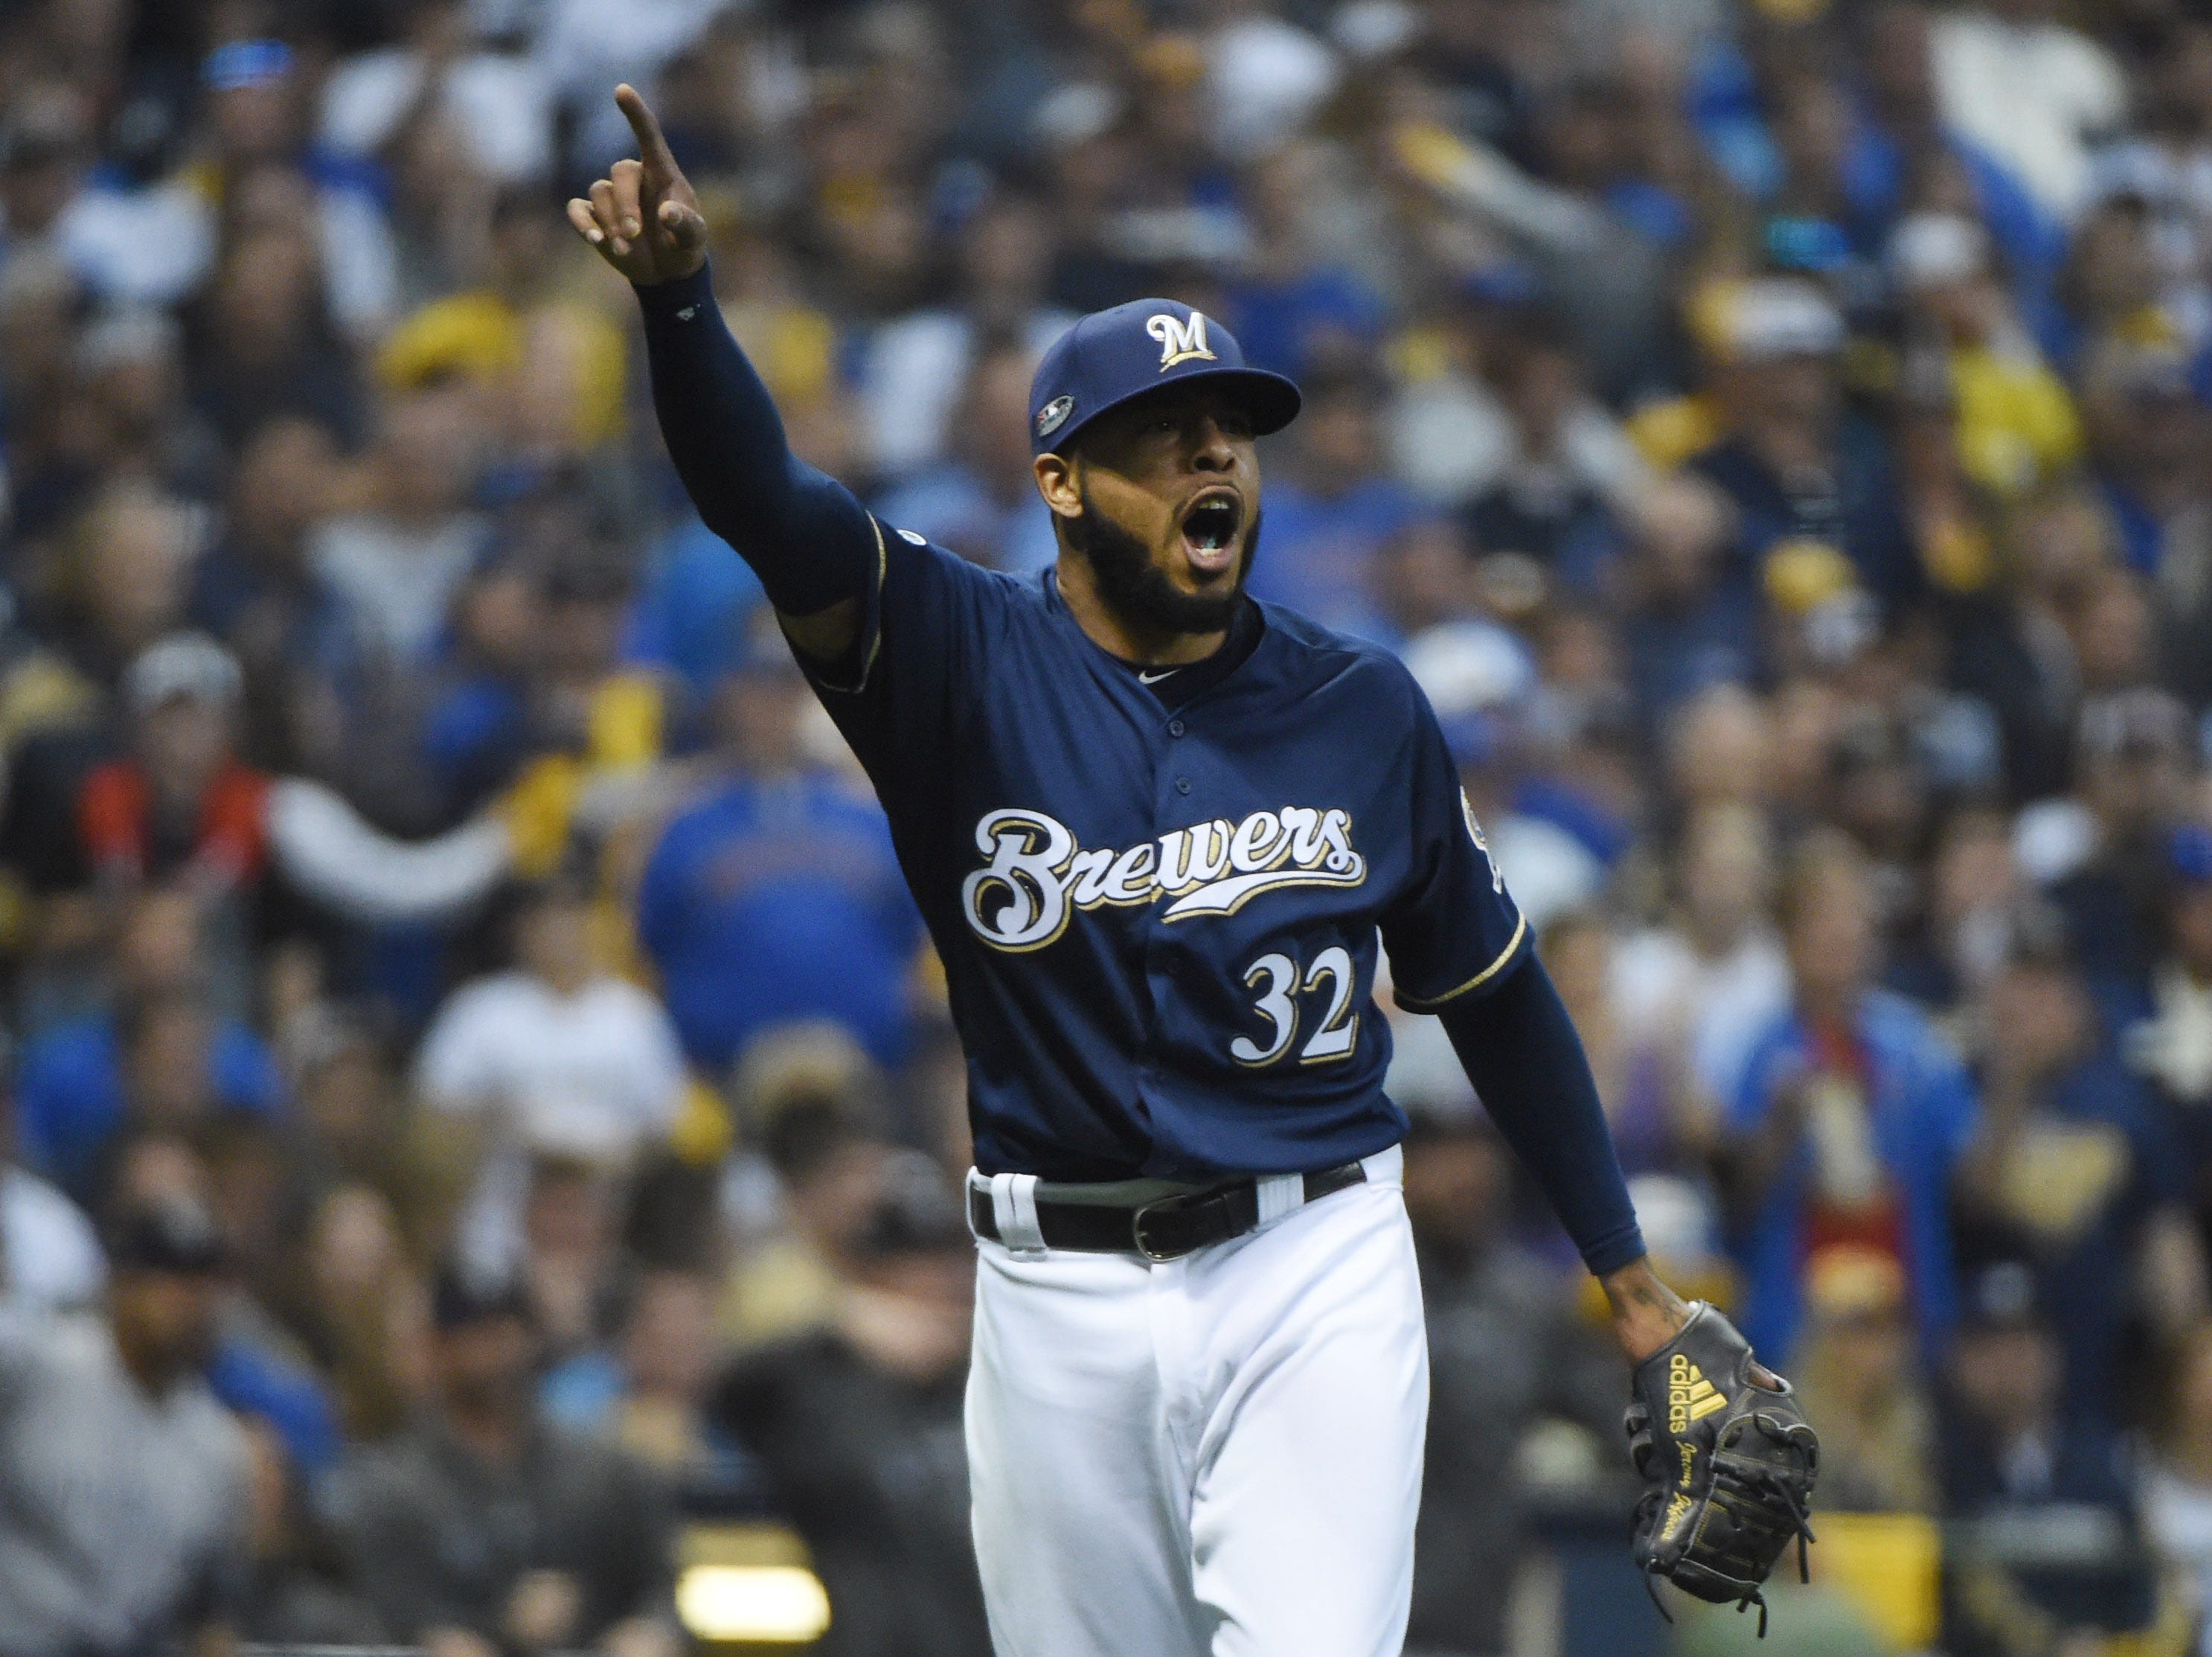 NLDS Game 1: Brewers reliever Jeremy Jeffress reacts to a ball hit by Charlie Blackmon in the ninth inning.